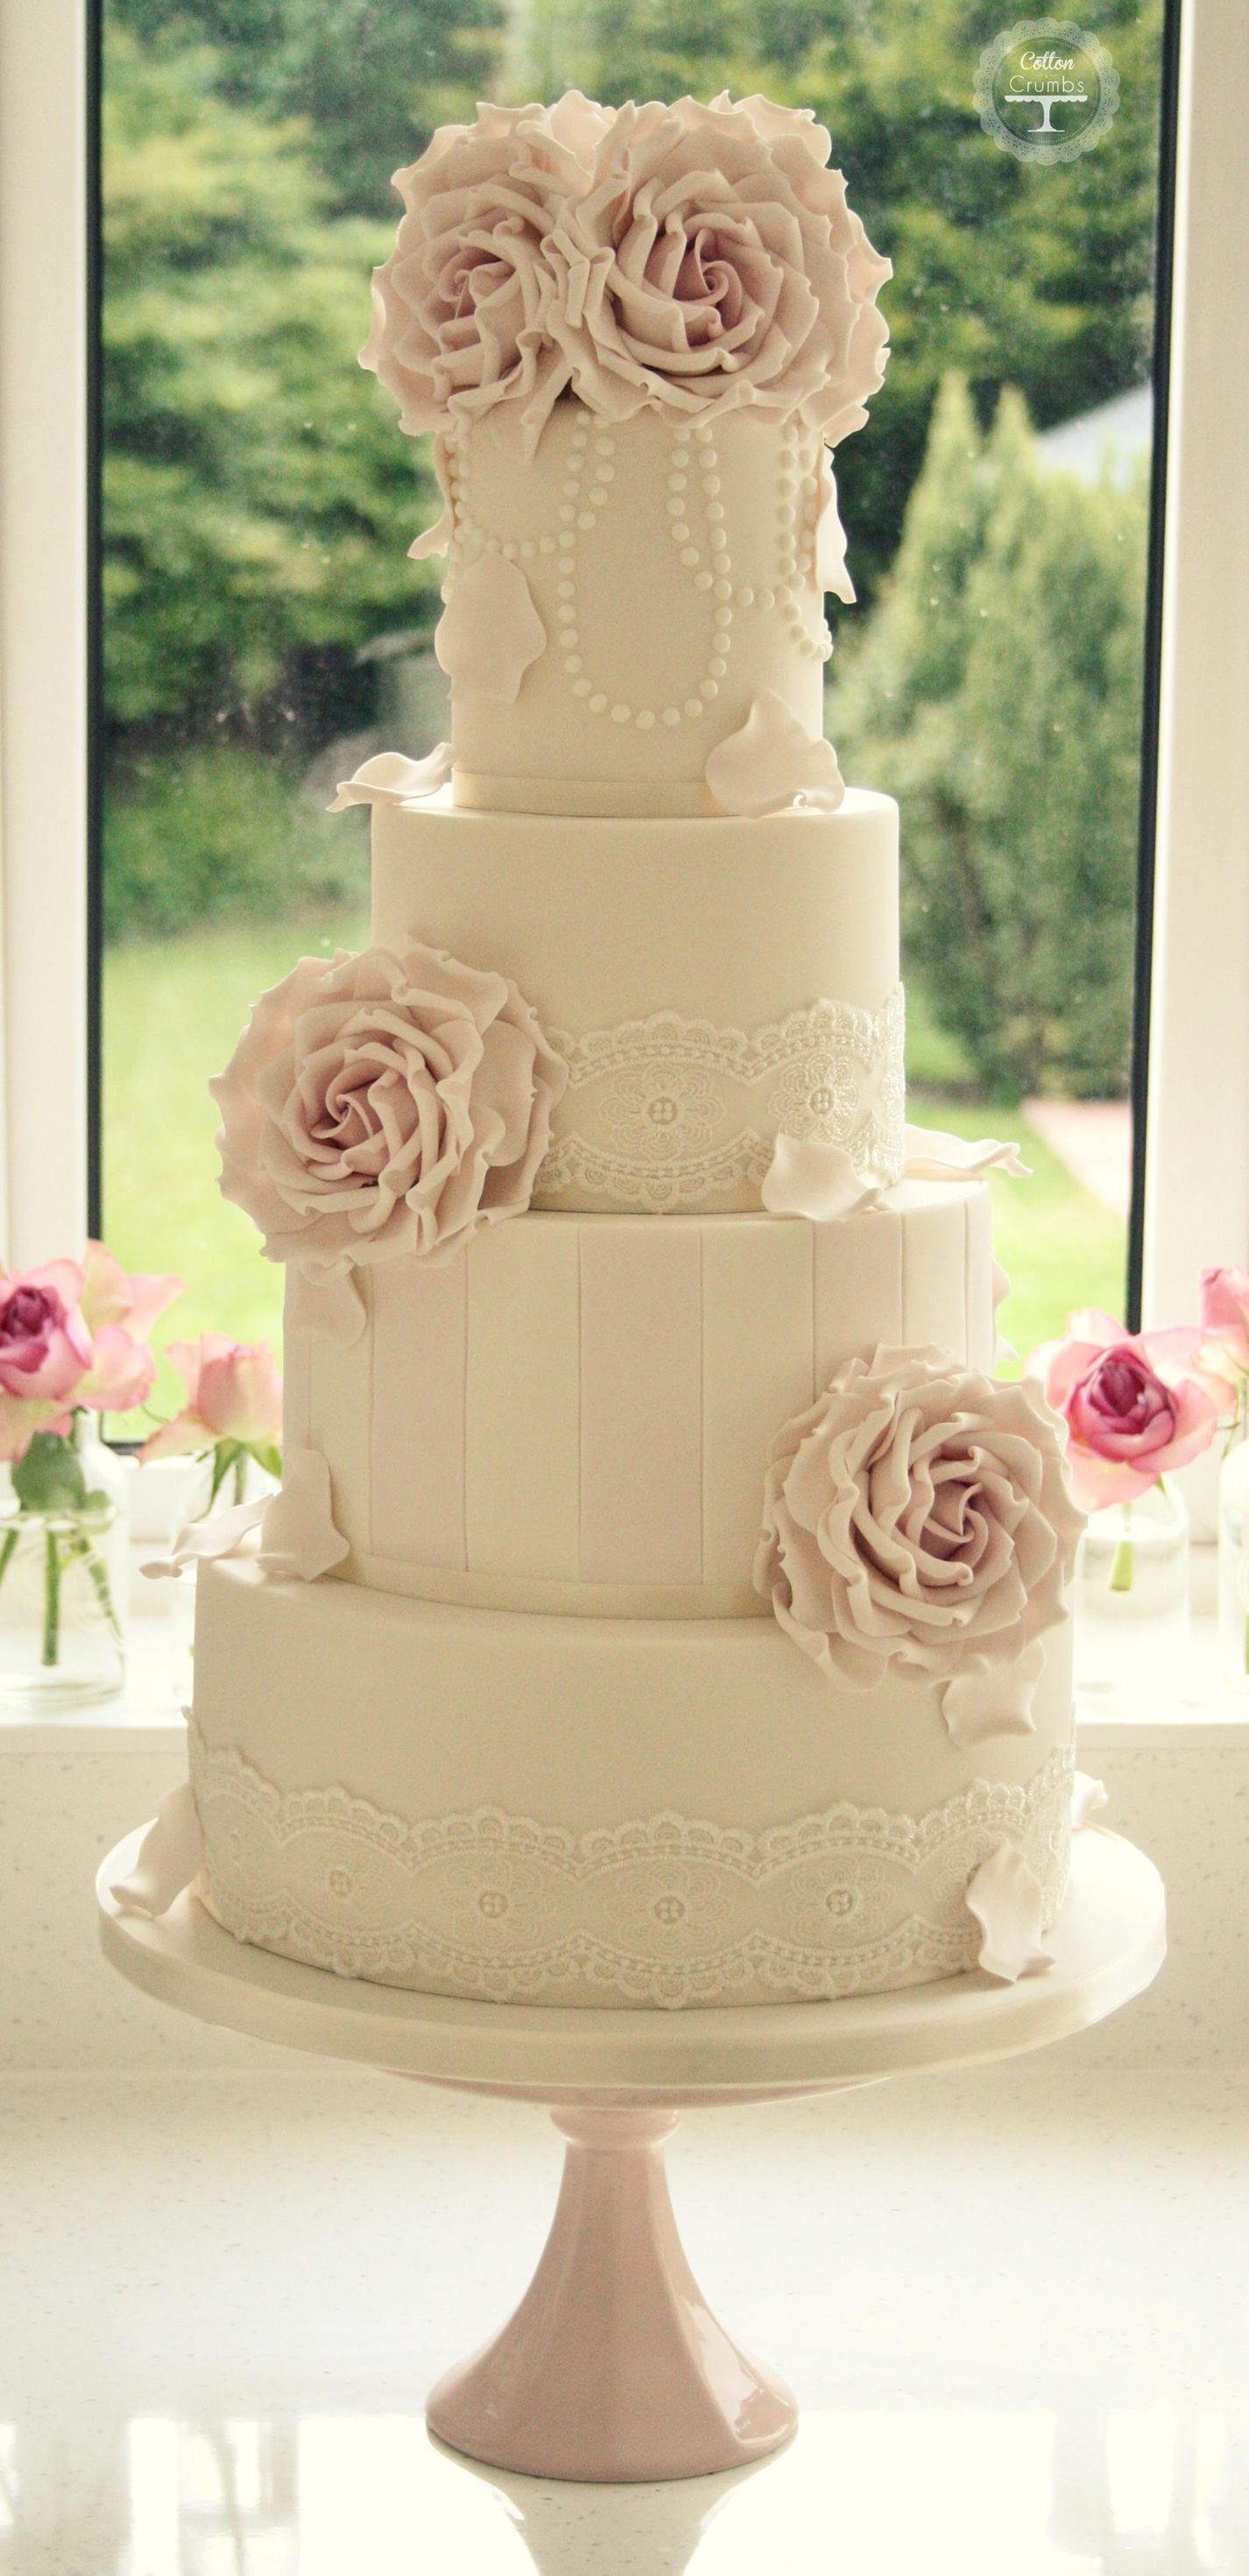 wedding-cake-ideas-6-06202014nz